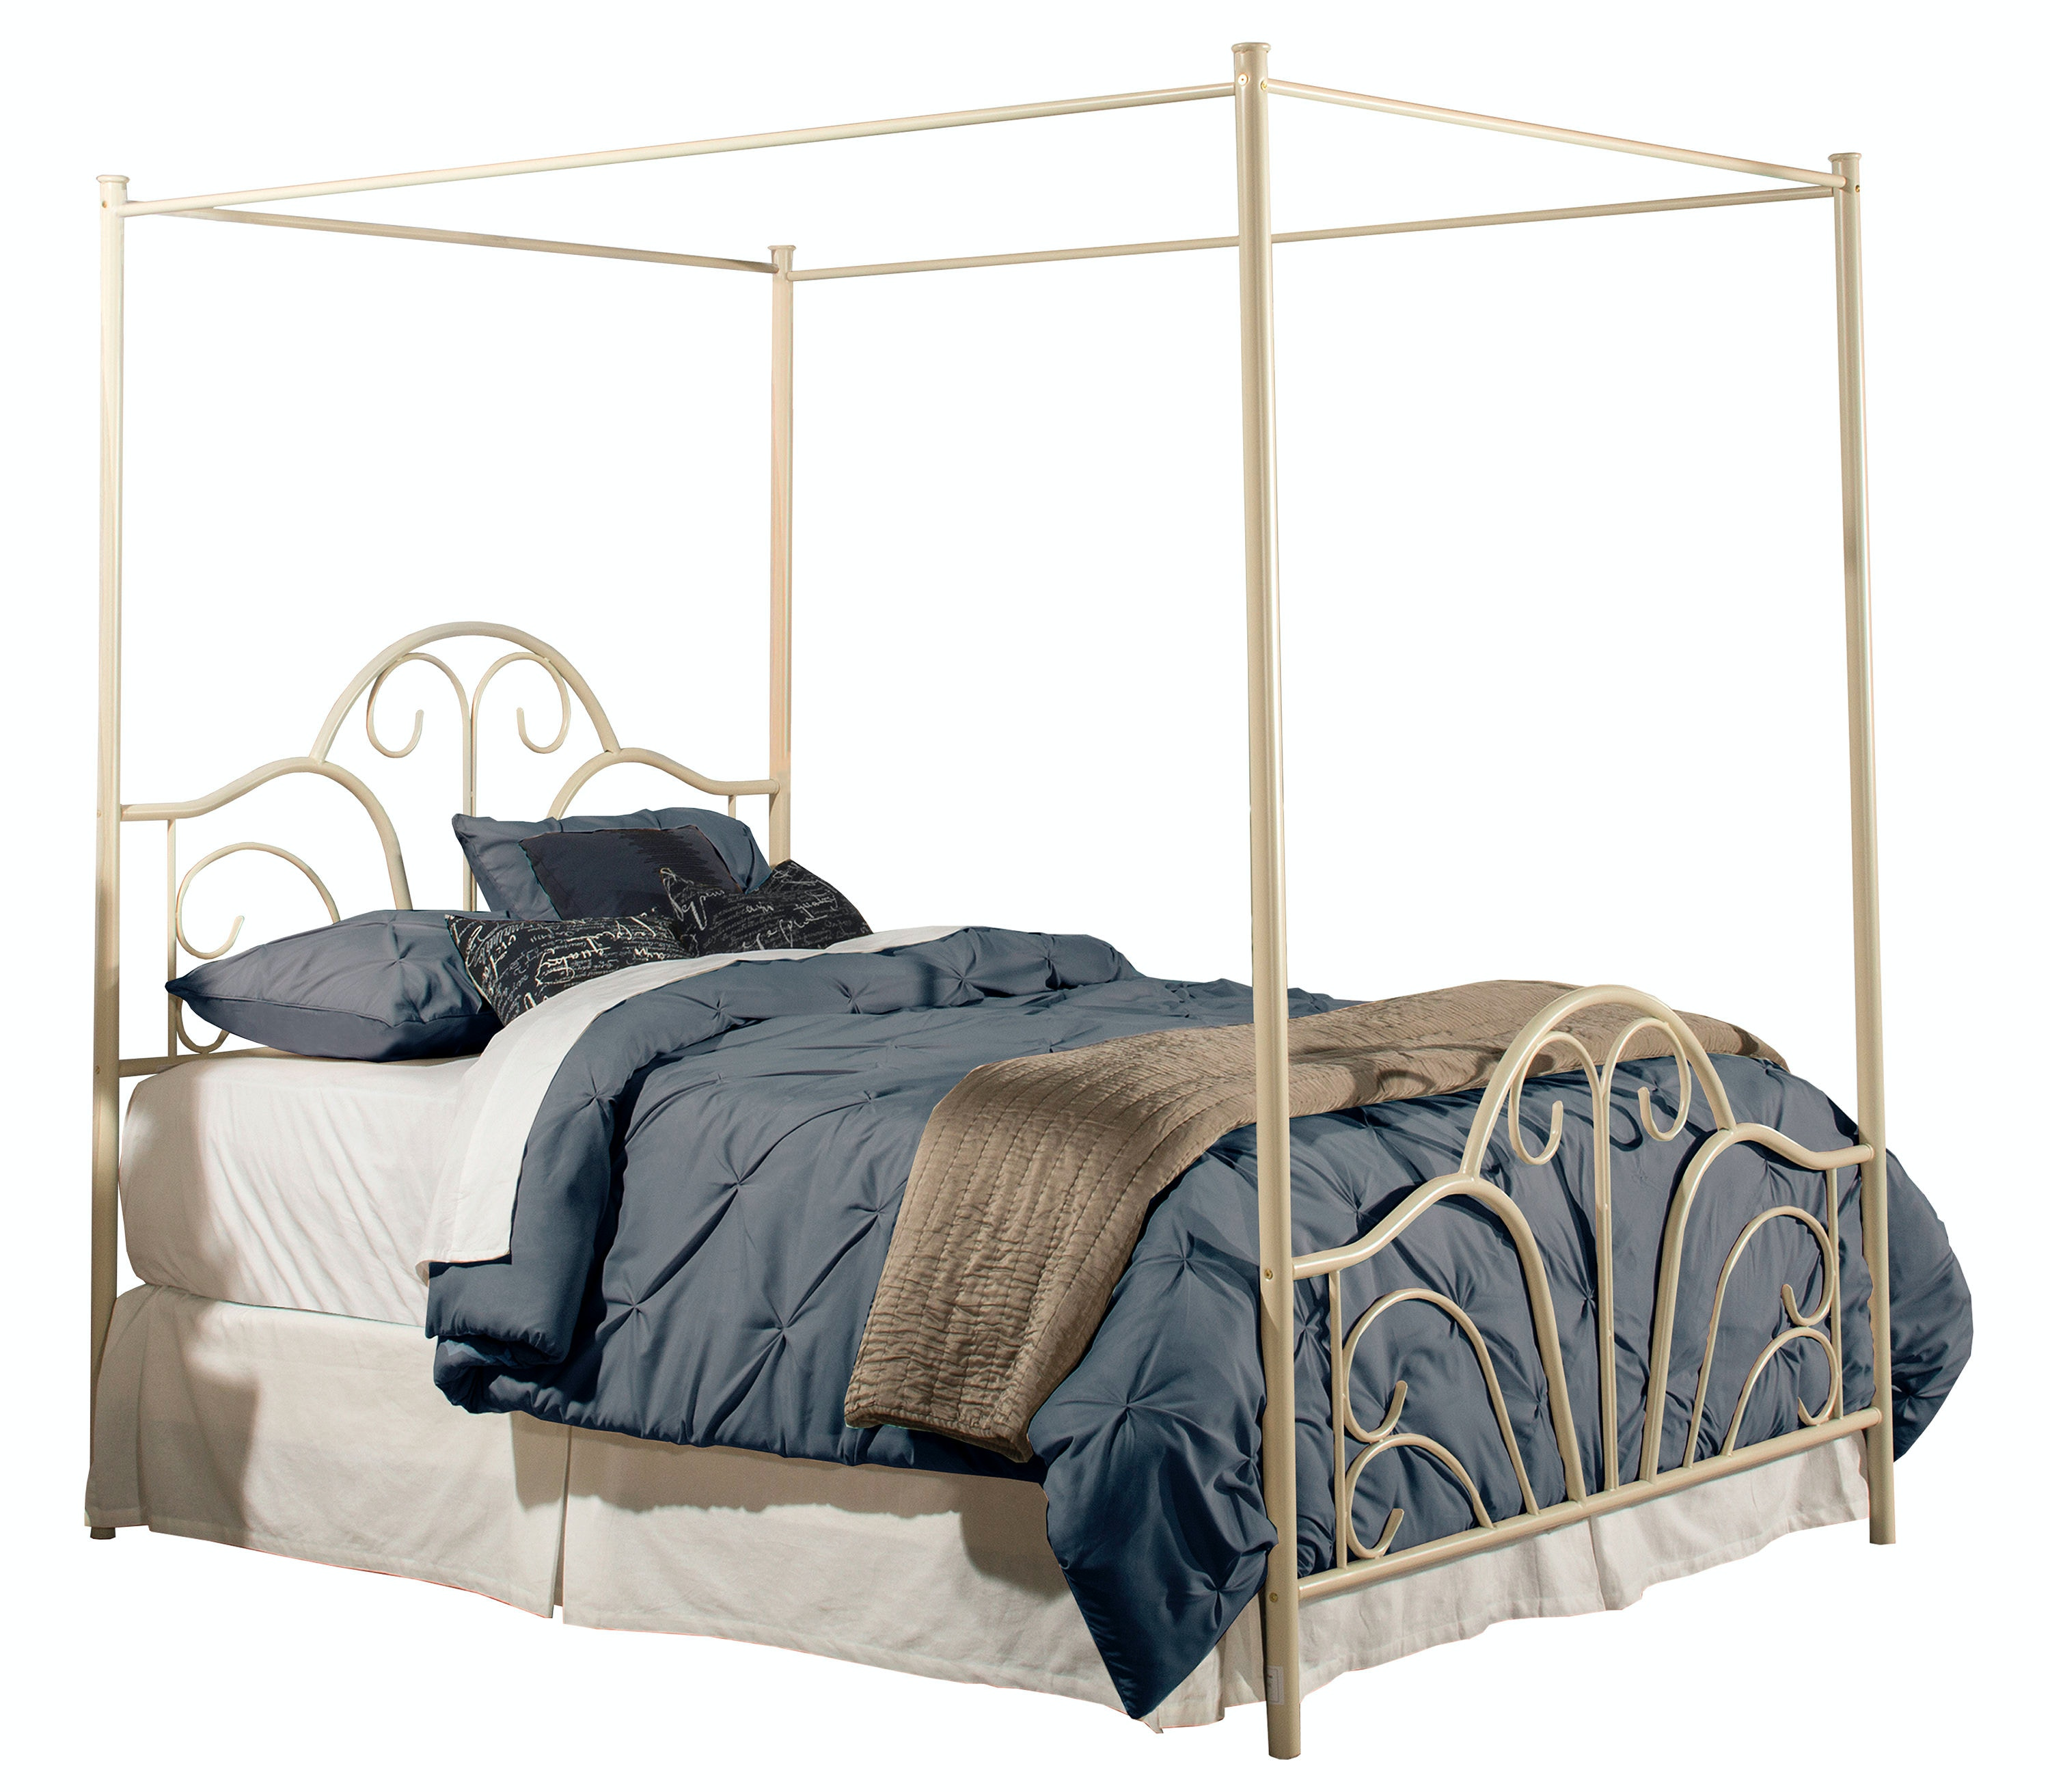 Hillsdale Furniture Dover Bed Set - King - with Canopy and Legs - Bed Frame Not  sc 1 st  Furniture Kingdom & Hillsdale Furniture Bedroom Dover Bed Set - King - with Canopy and ...